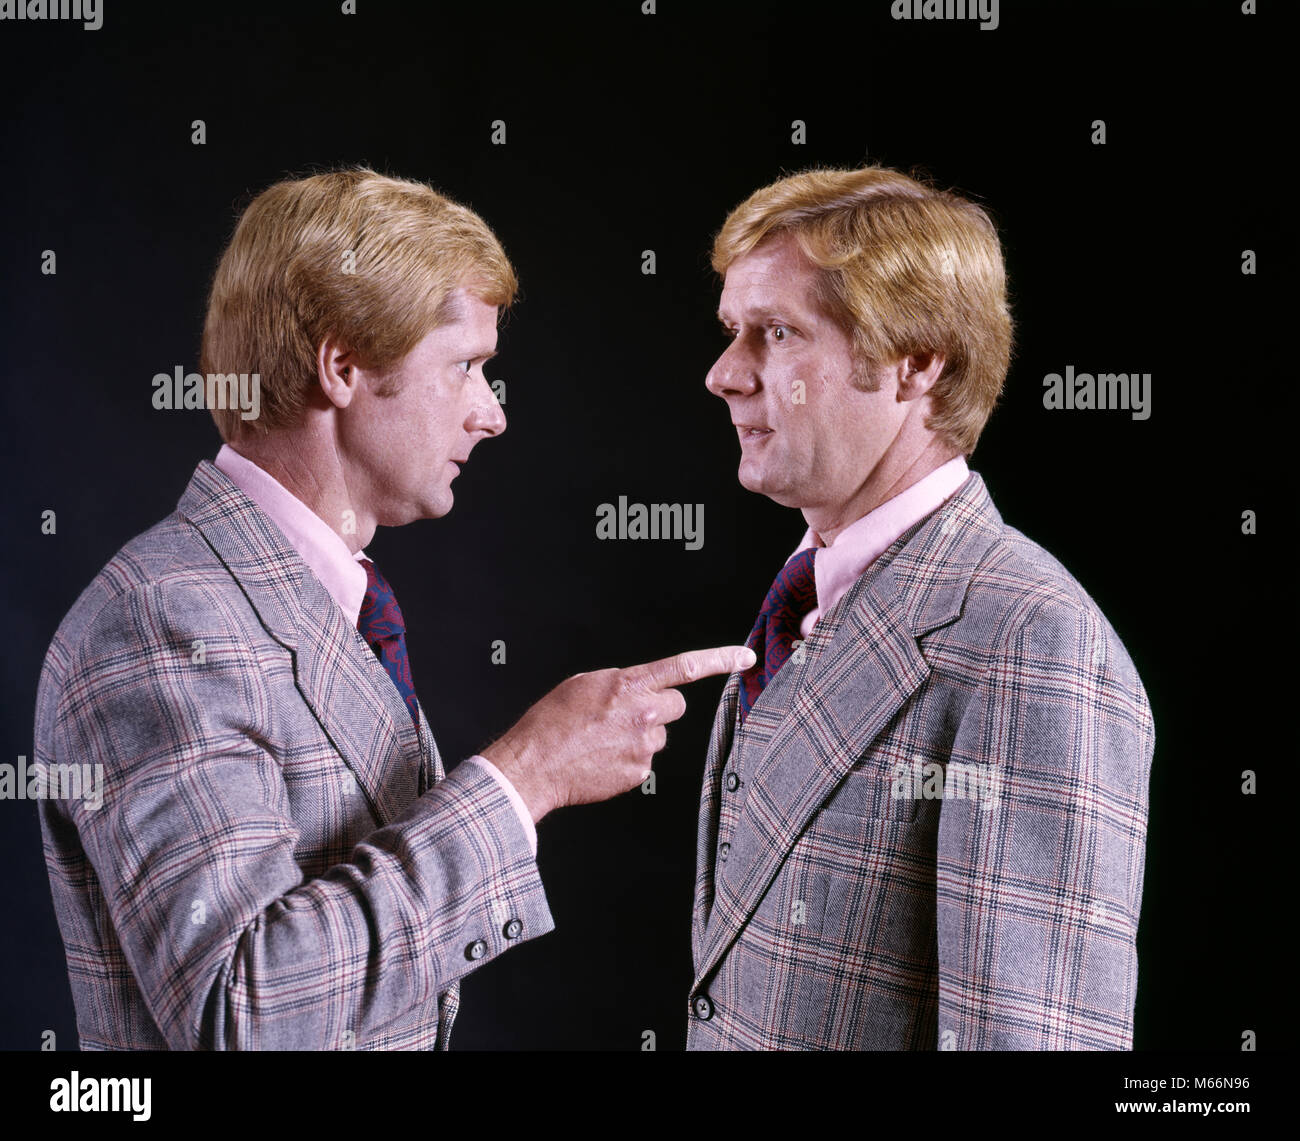 1970s BLOND MAN IN PLAID THREE PIECE SUIT POINTING ACCUSING FINGER AT HIMSELF HUMOROUS DOUBLE EXPOSURE - ks13570 - Stock Image